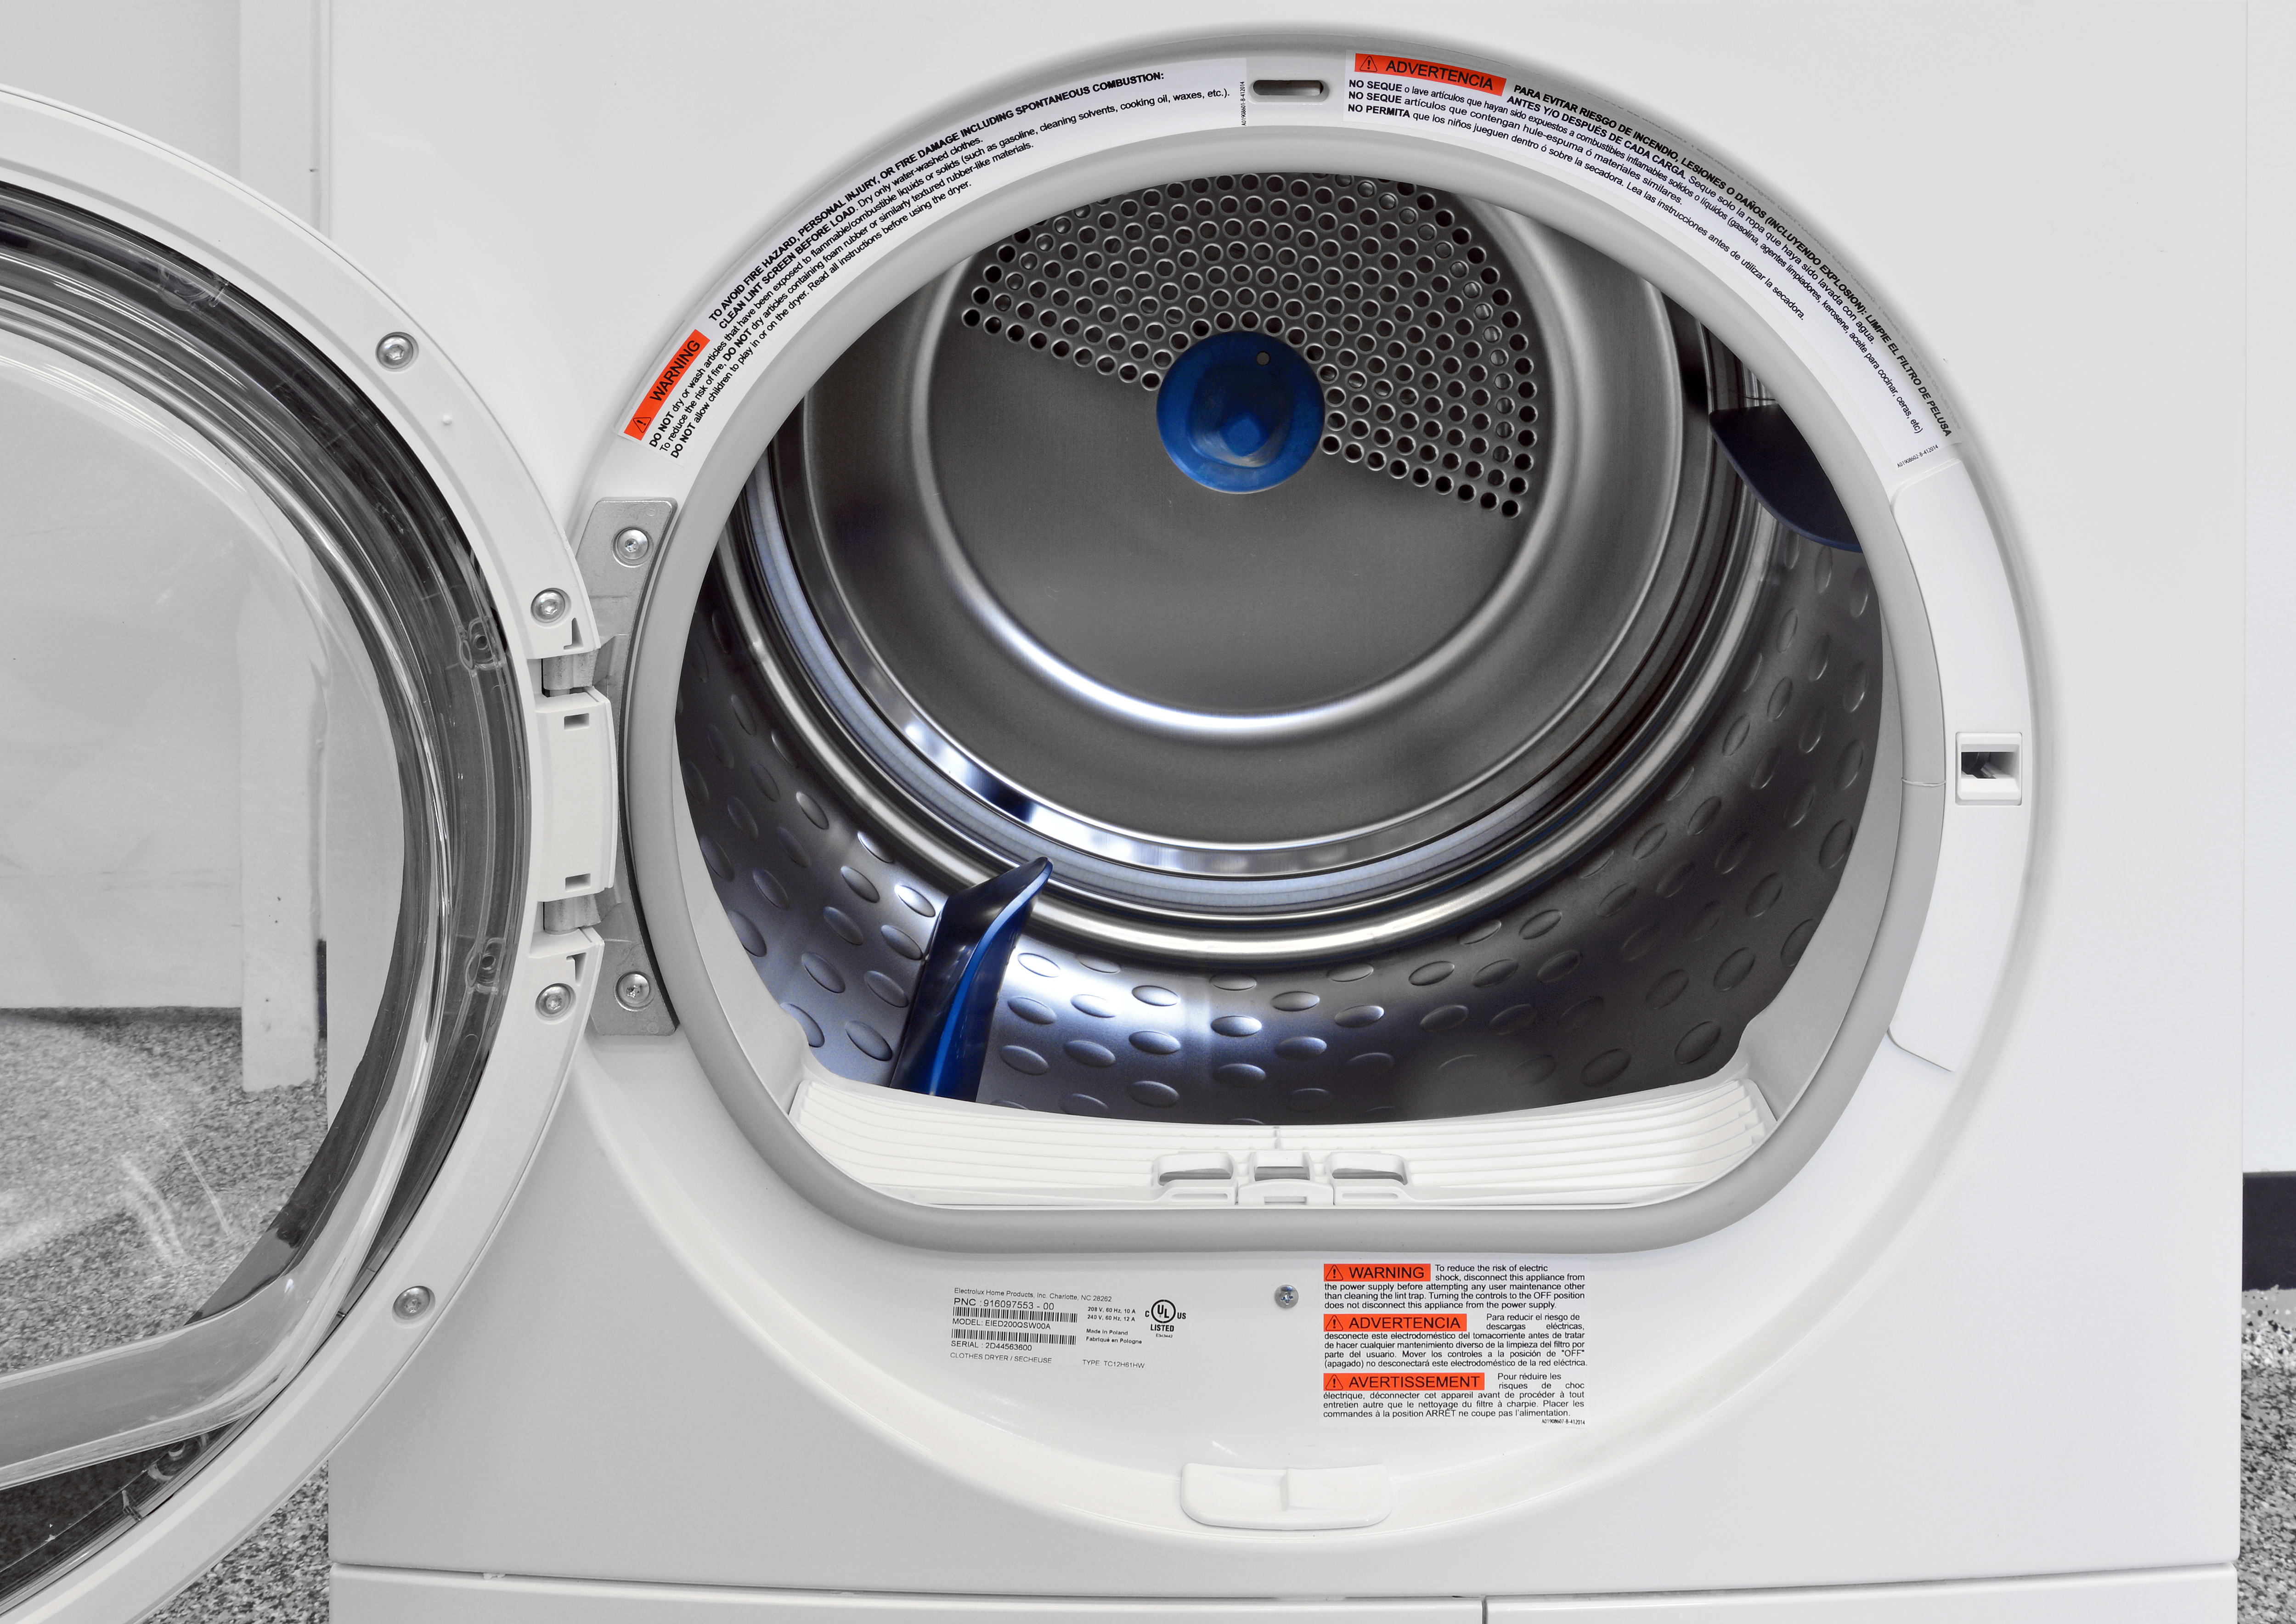 Electrolux Eied200qsw Ventless Condenser Dryer Review Frigidaire Washer And Knobs Front Load Electric The Eied200qsws 4 Cu Ft Stainless Steel Drum Is Large For